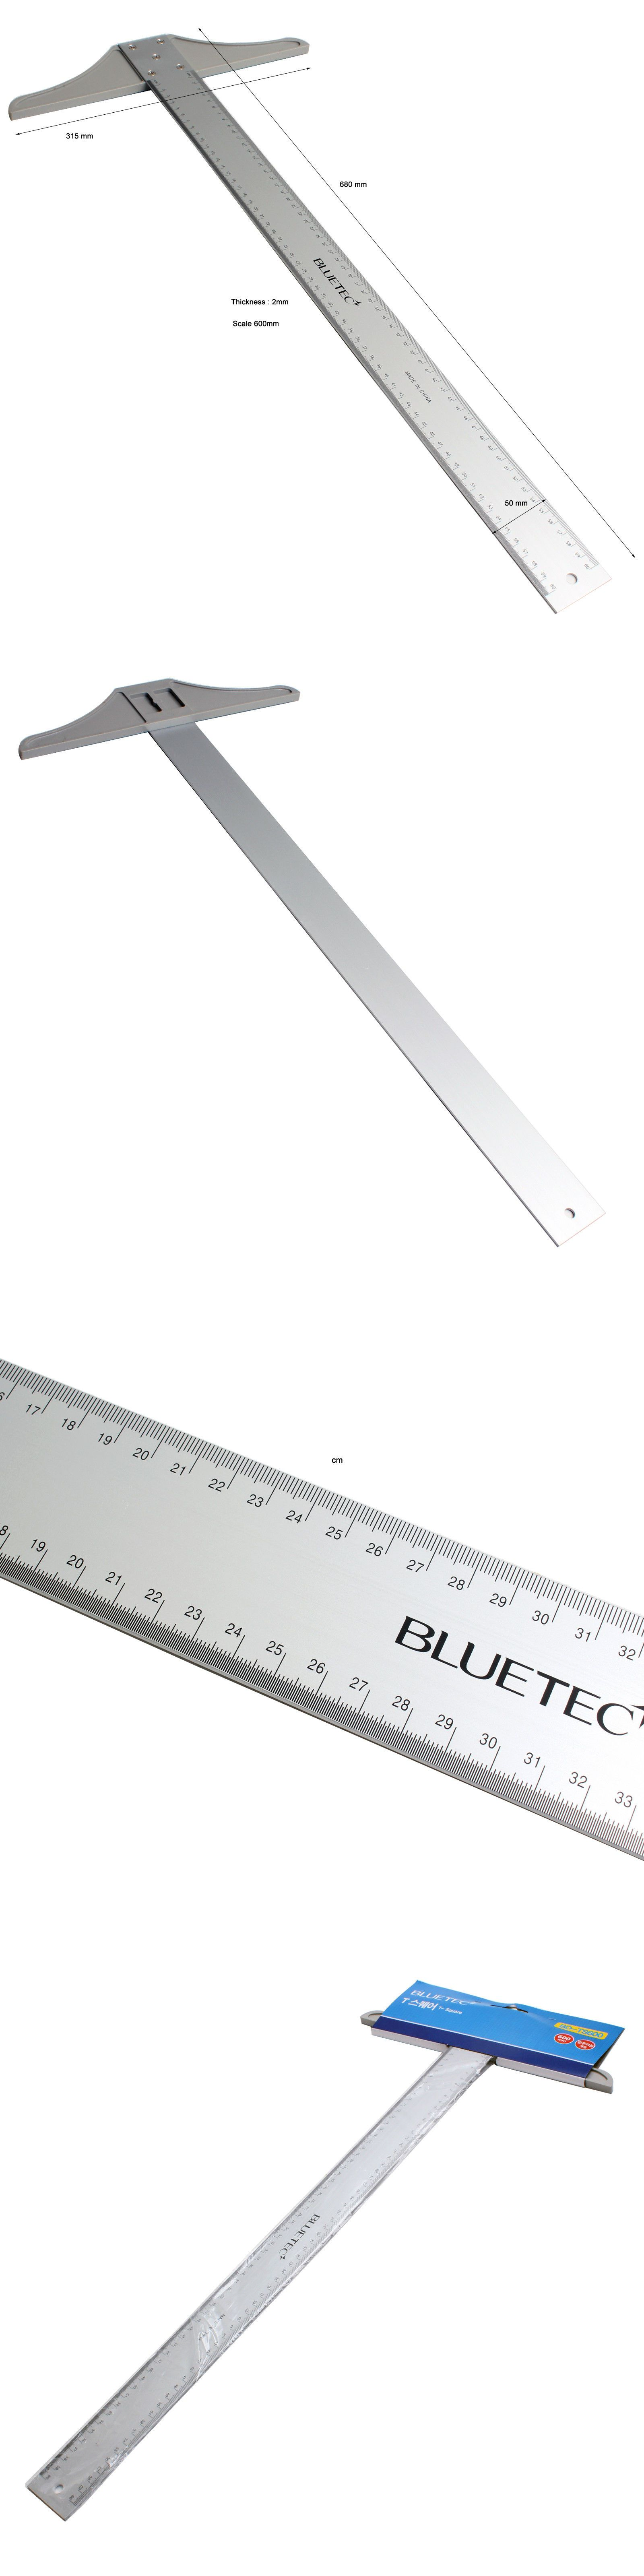 Squares 42253 T Square Metric Ruler Aluminum 600mm Bd Ts600 Buy It Now Only 20 9 On Ebay Squares Square Metric Ruler Aluminum Metric Ruler Square